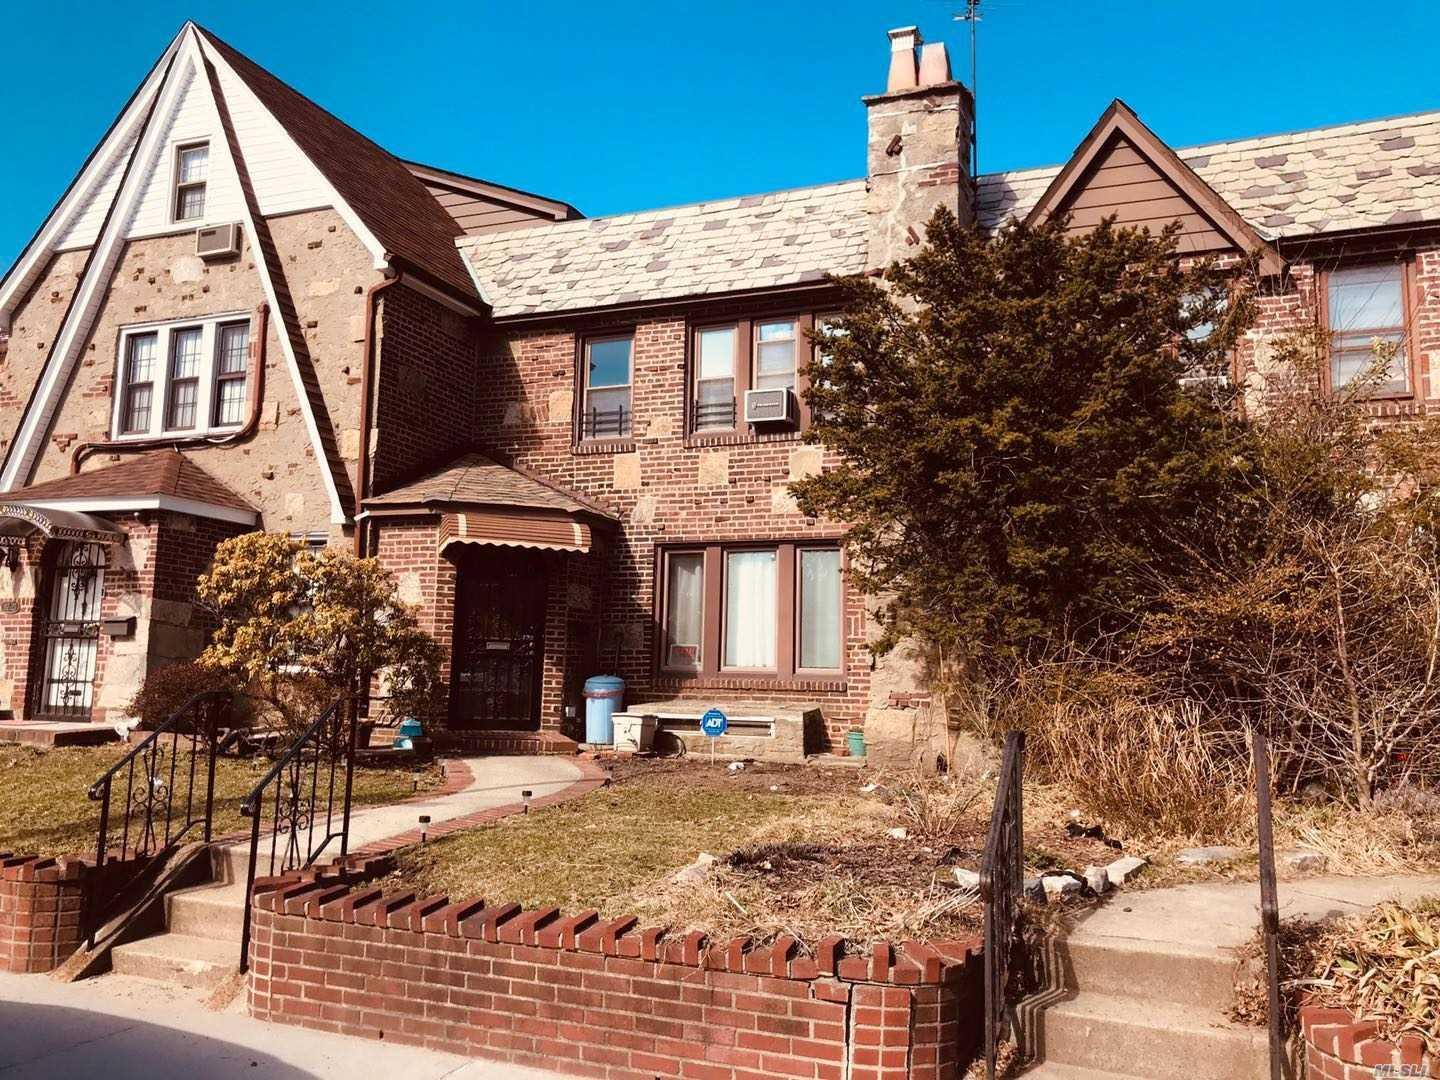 Lovely Charming, Covenience Tudor Located In Excellent Location. Blocks Away From Queens Blvd. Renovated Eat-In Kitchen And Baths. Formal Dining Room With Woodfire Place. Steps Away From Transportation And Shopping. Great School District And Closed To All.